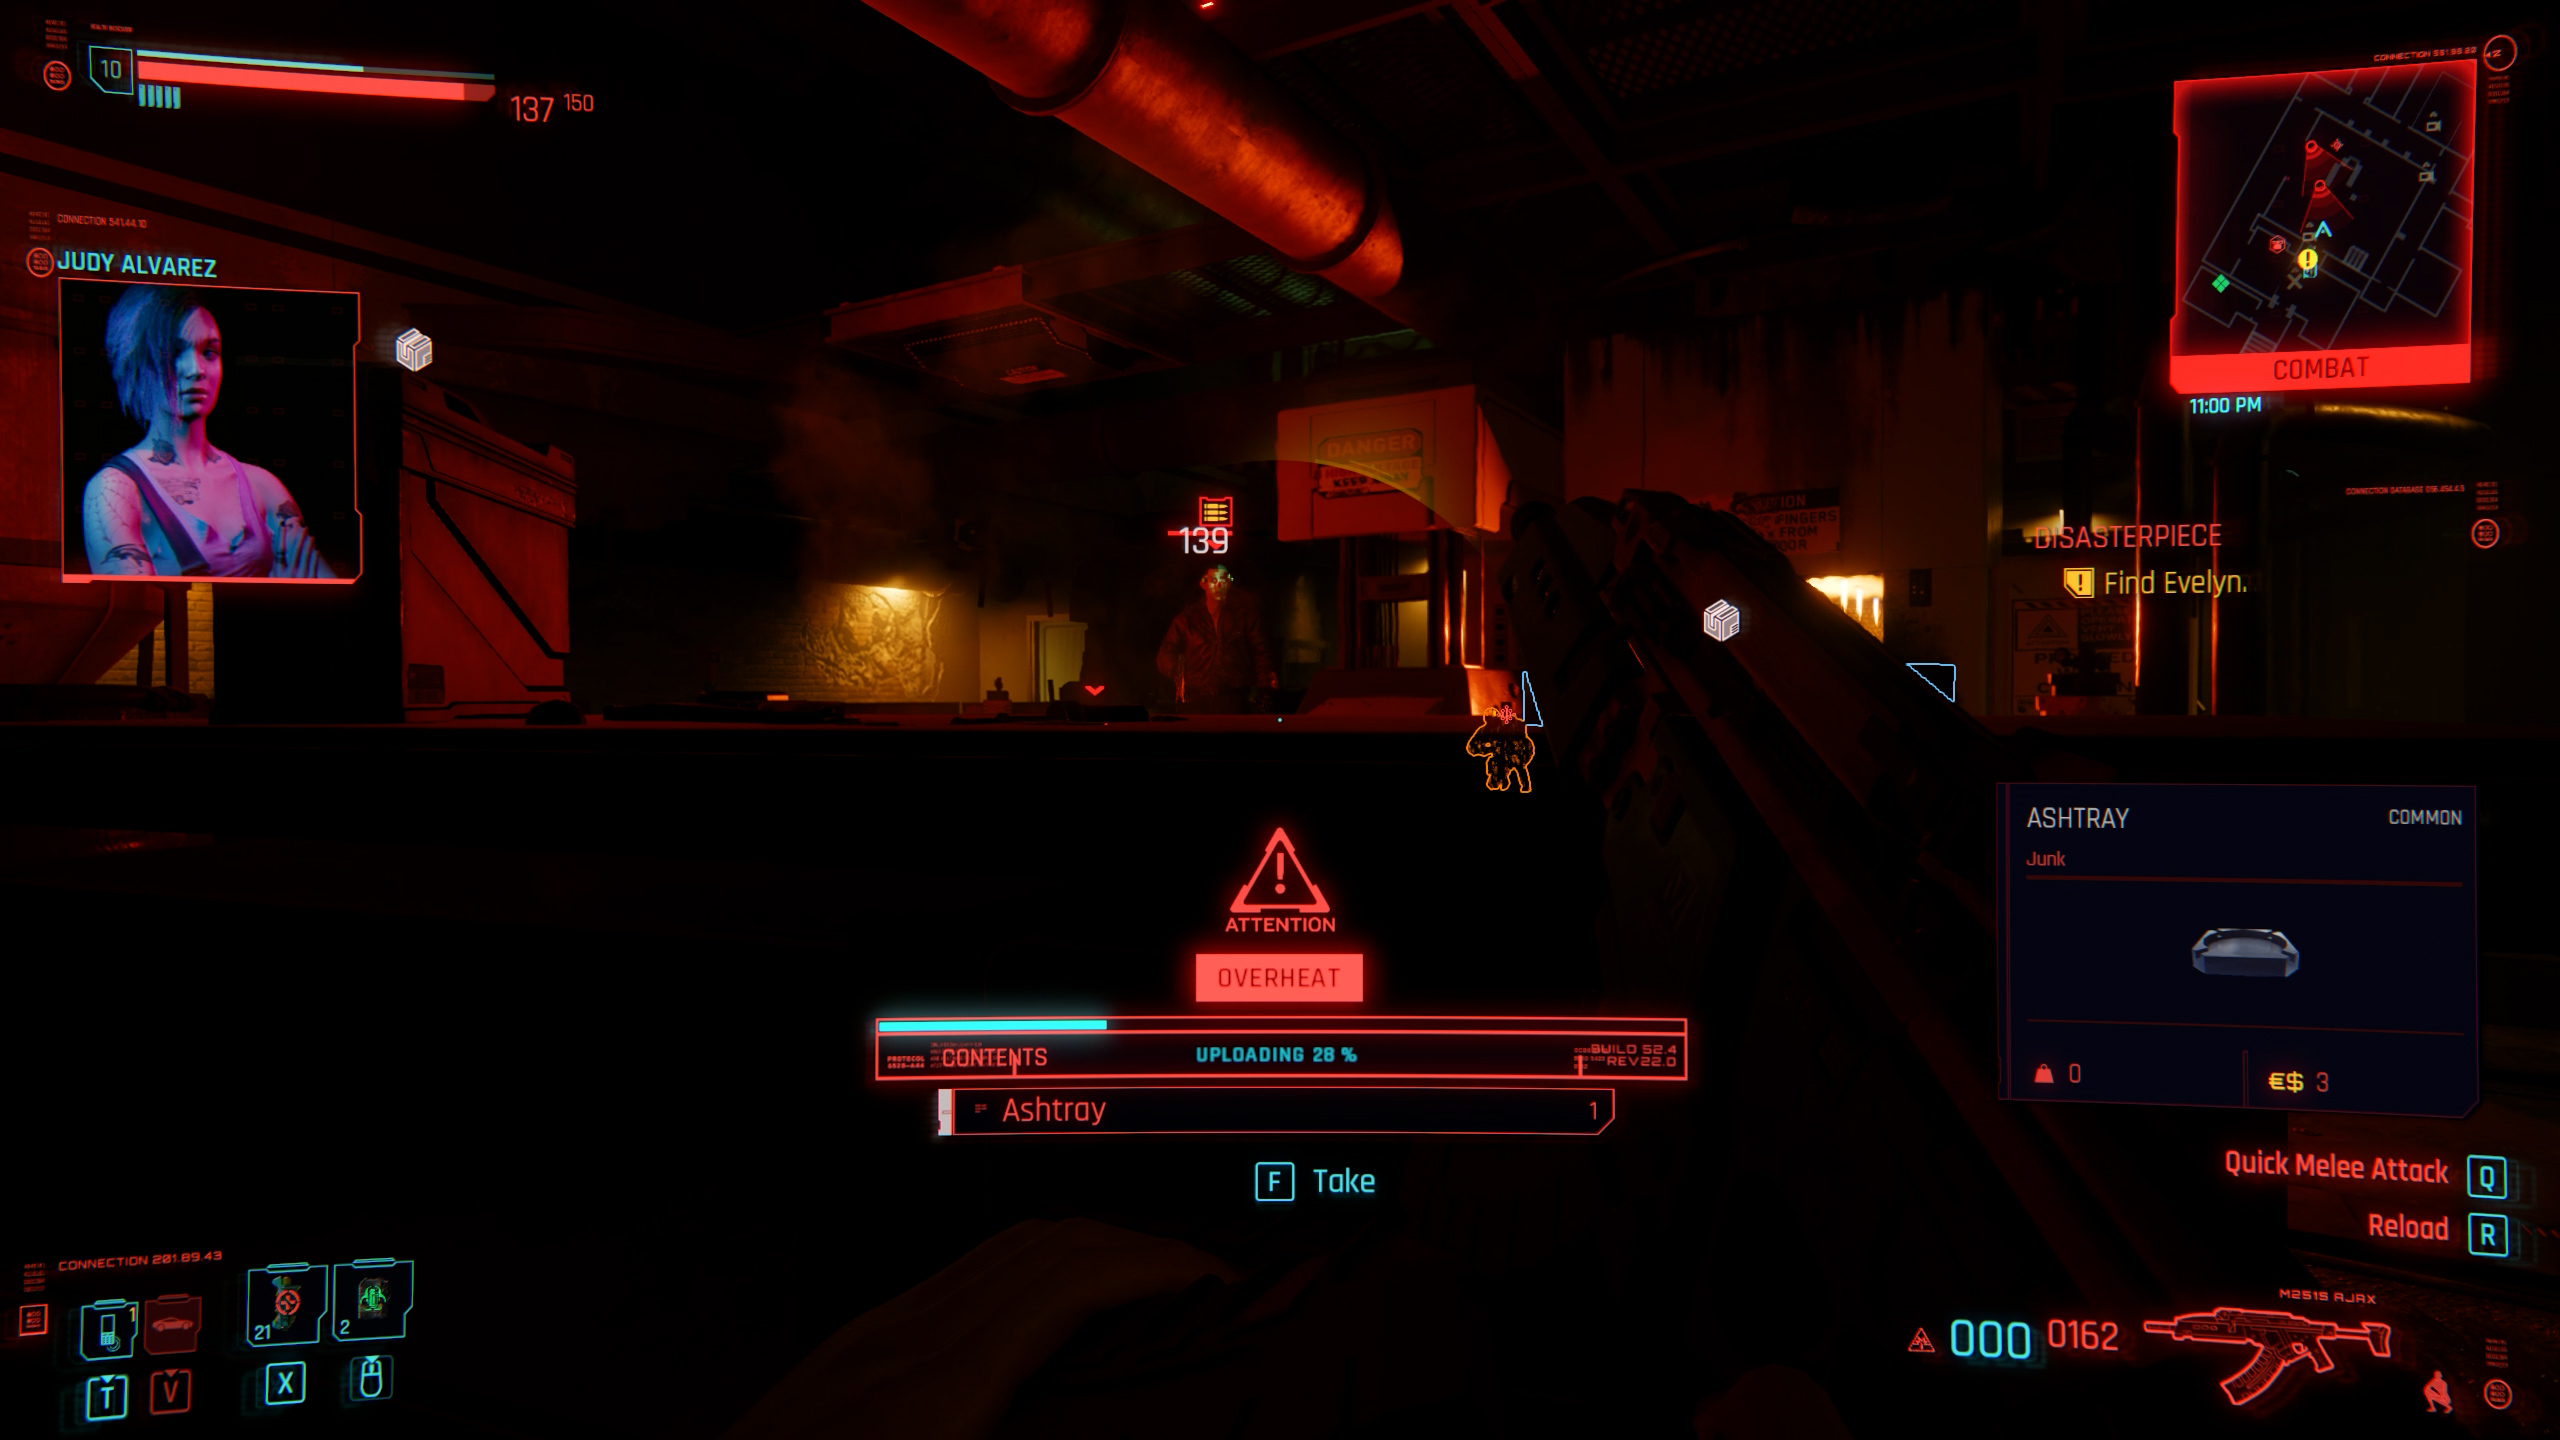 what does overheat mean in cyberpunk 2077?